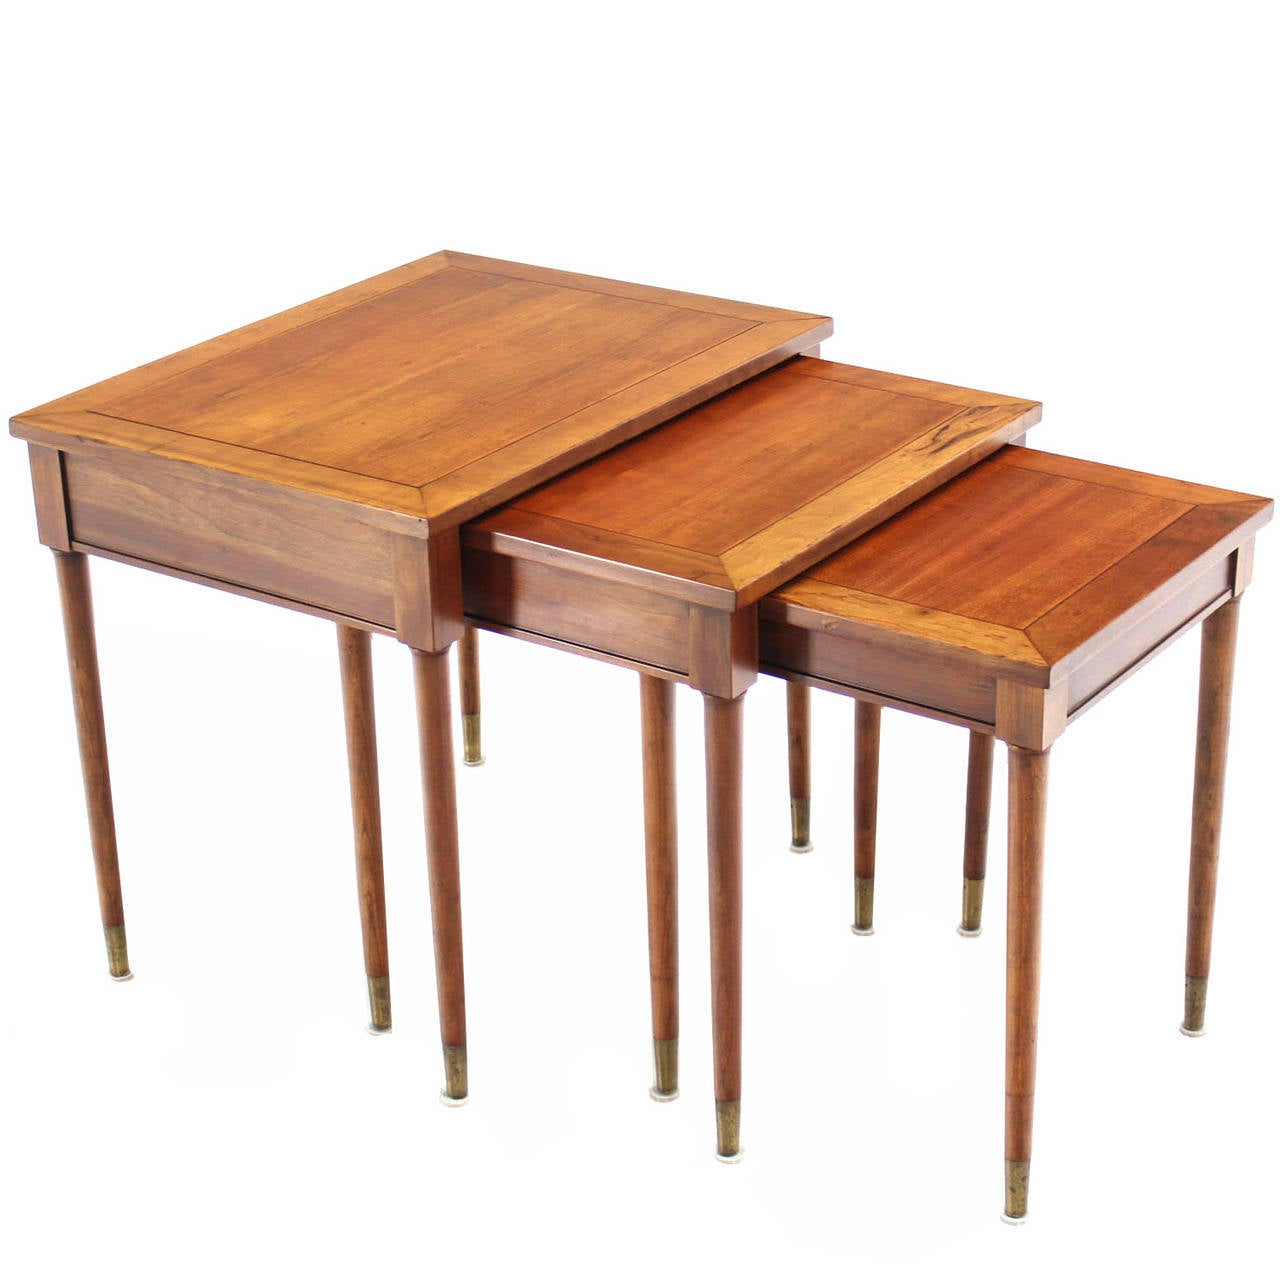 Set of Three Mid-Century Modern Walnut Nesting Tables